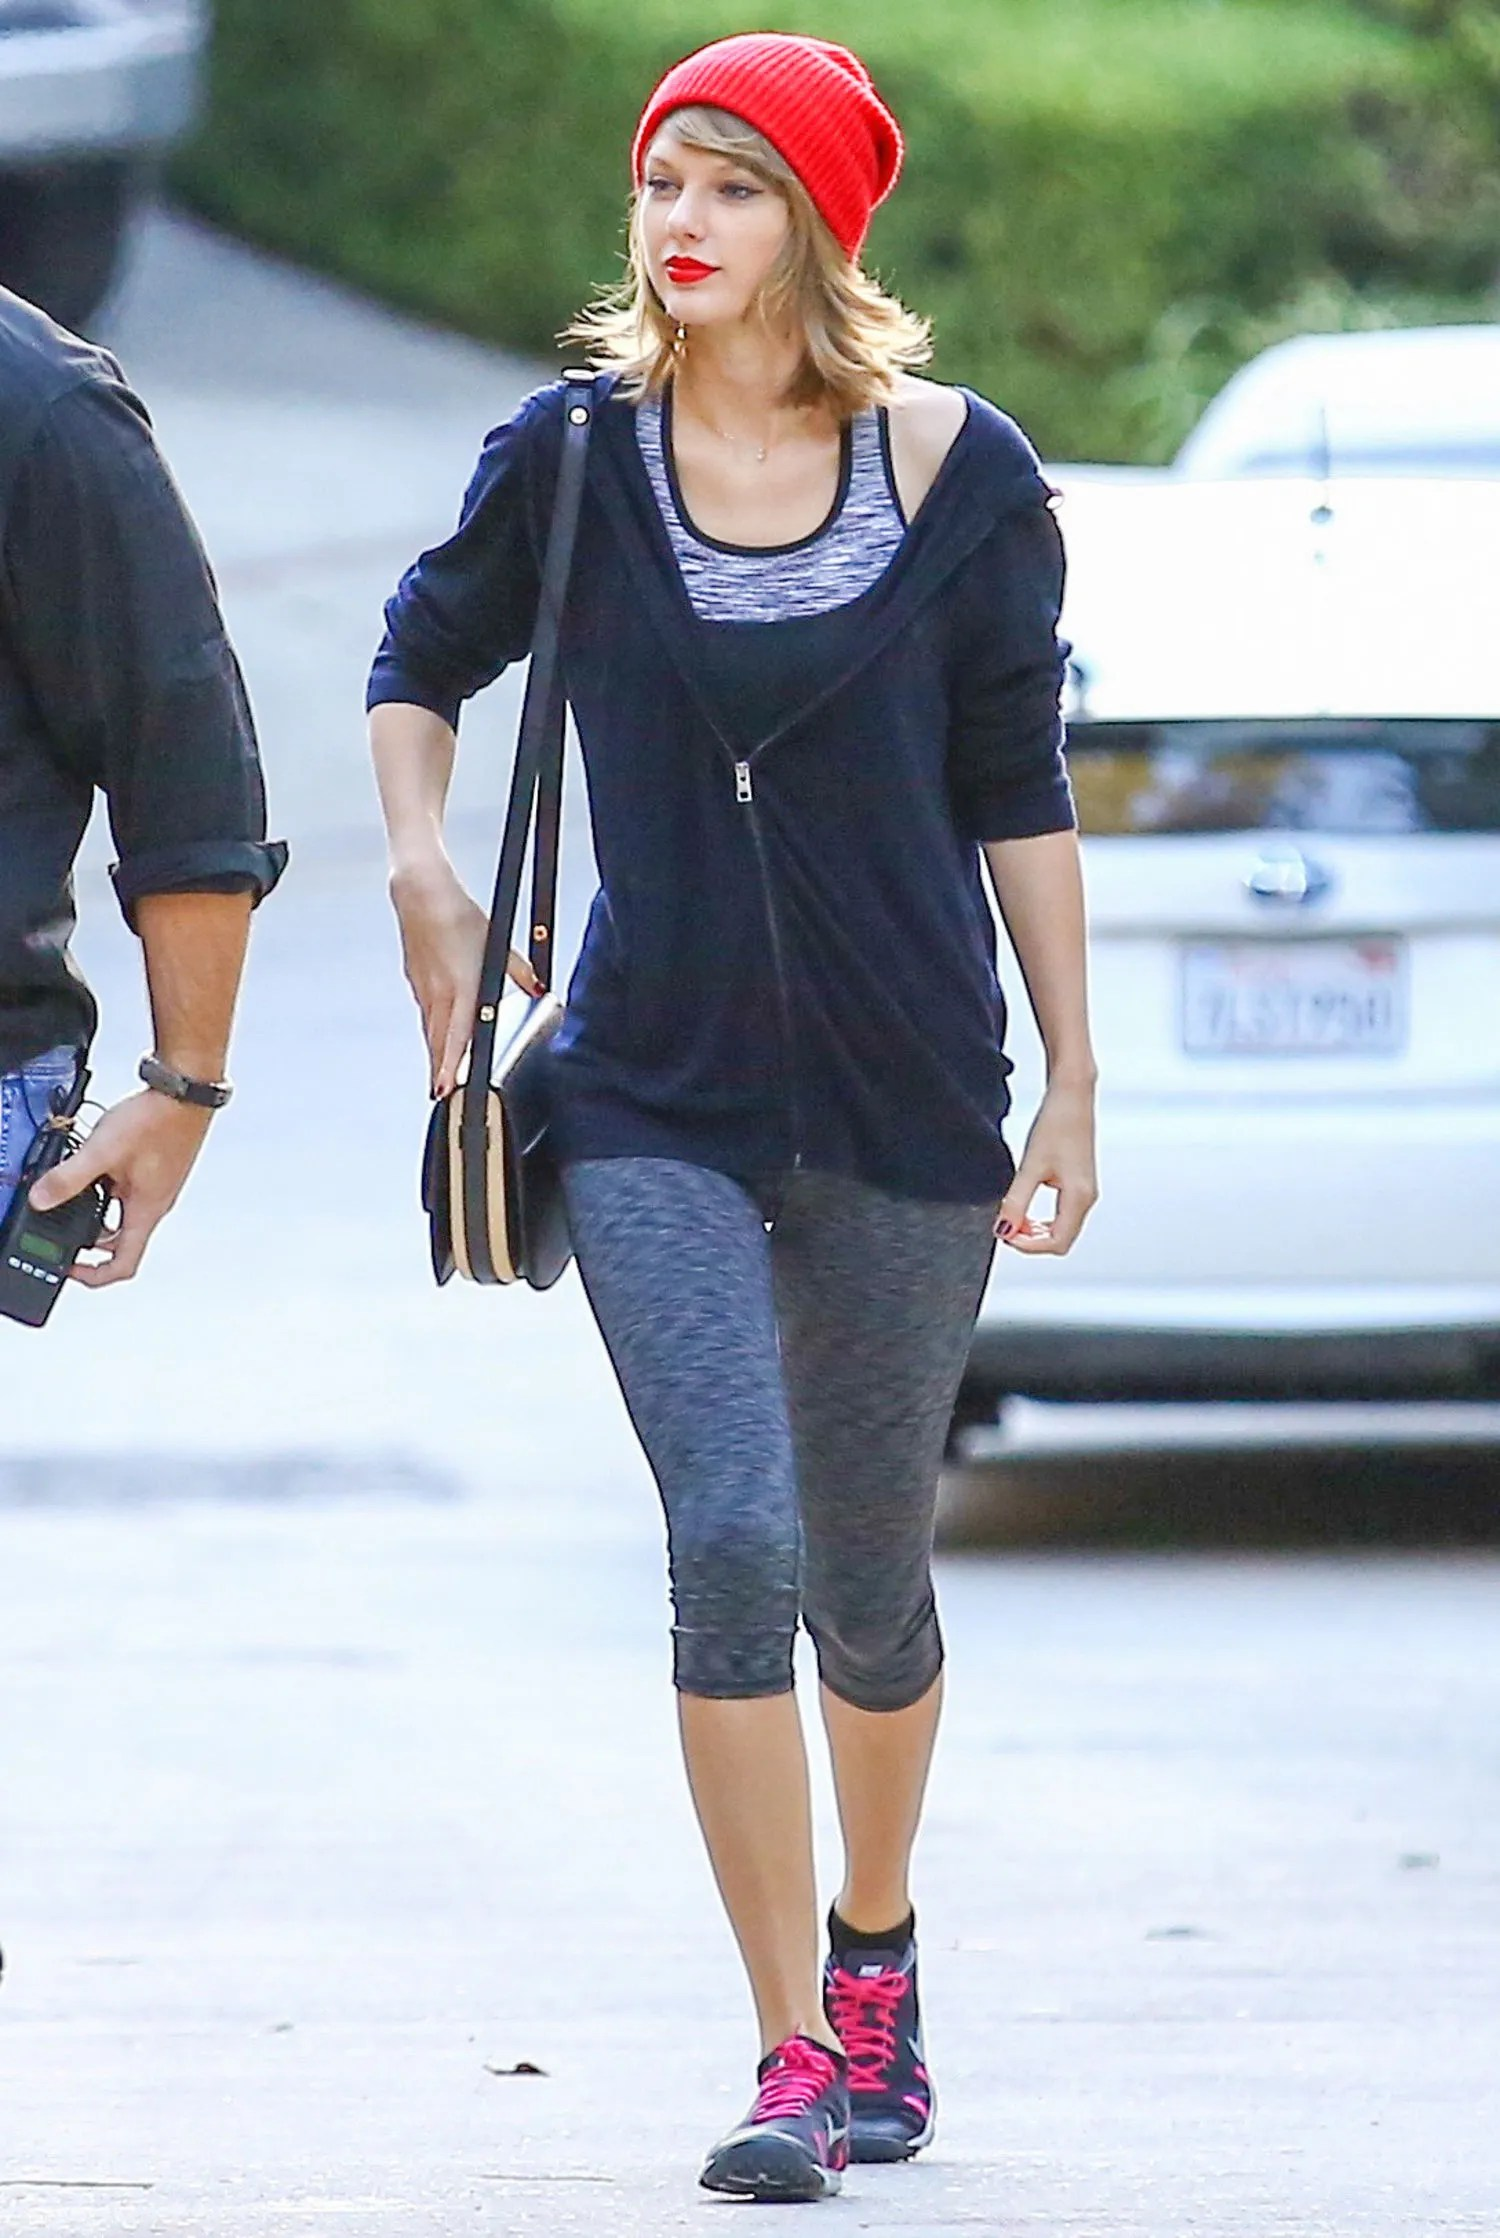 Cute Wallpapers For 12 Year Olds Taylor Swift S Chic Athleisure Style Is Giving Us Fitness